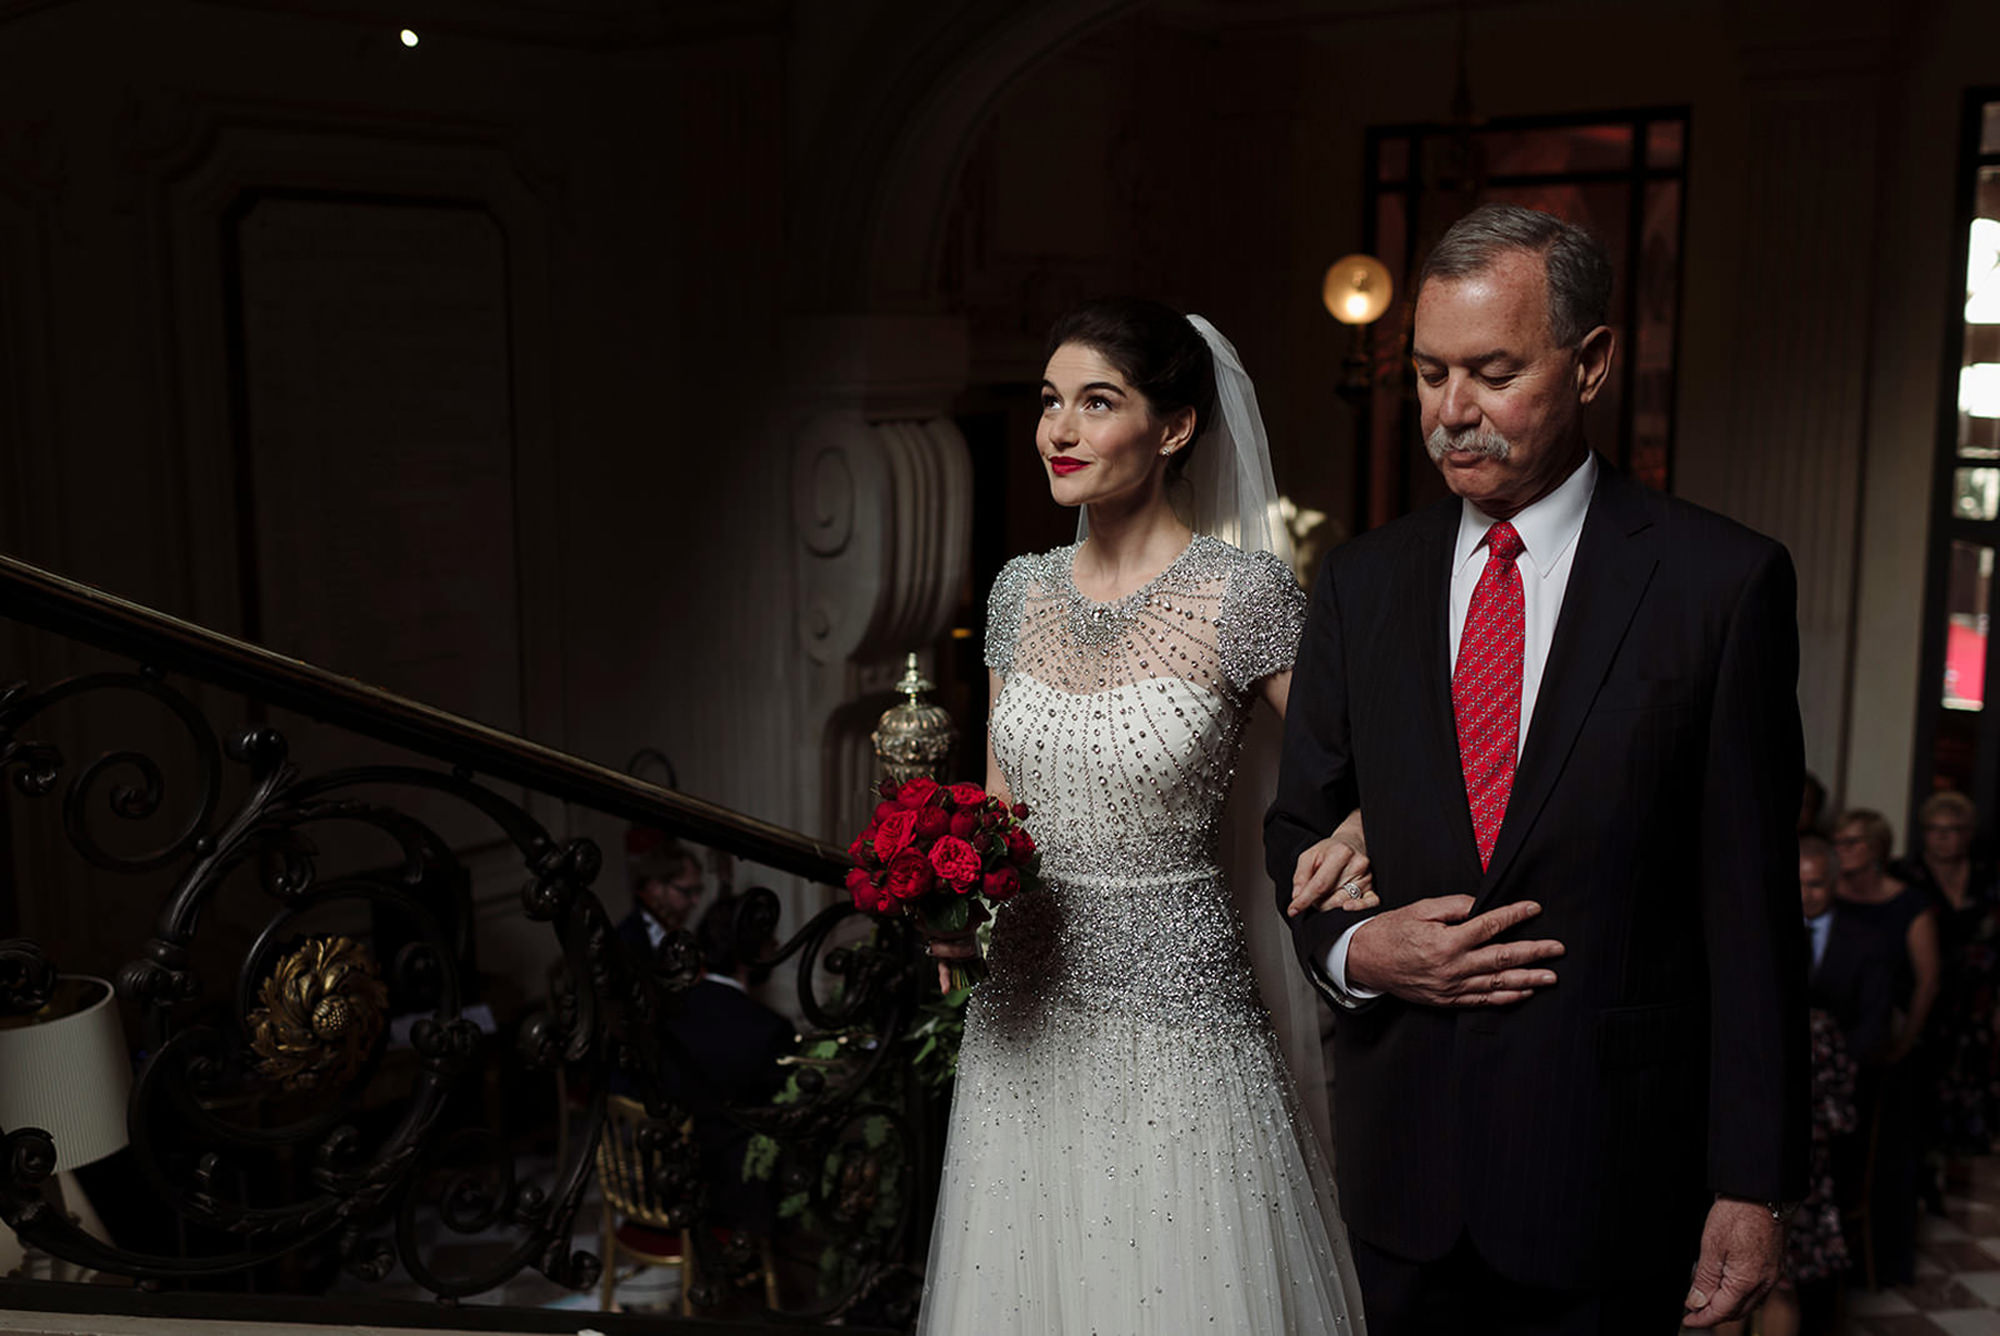 Bride in beaded gown heads to the aisle with her father - photo by Thierry Joubert